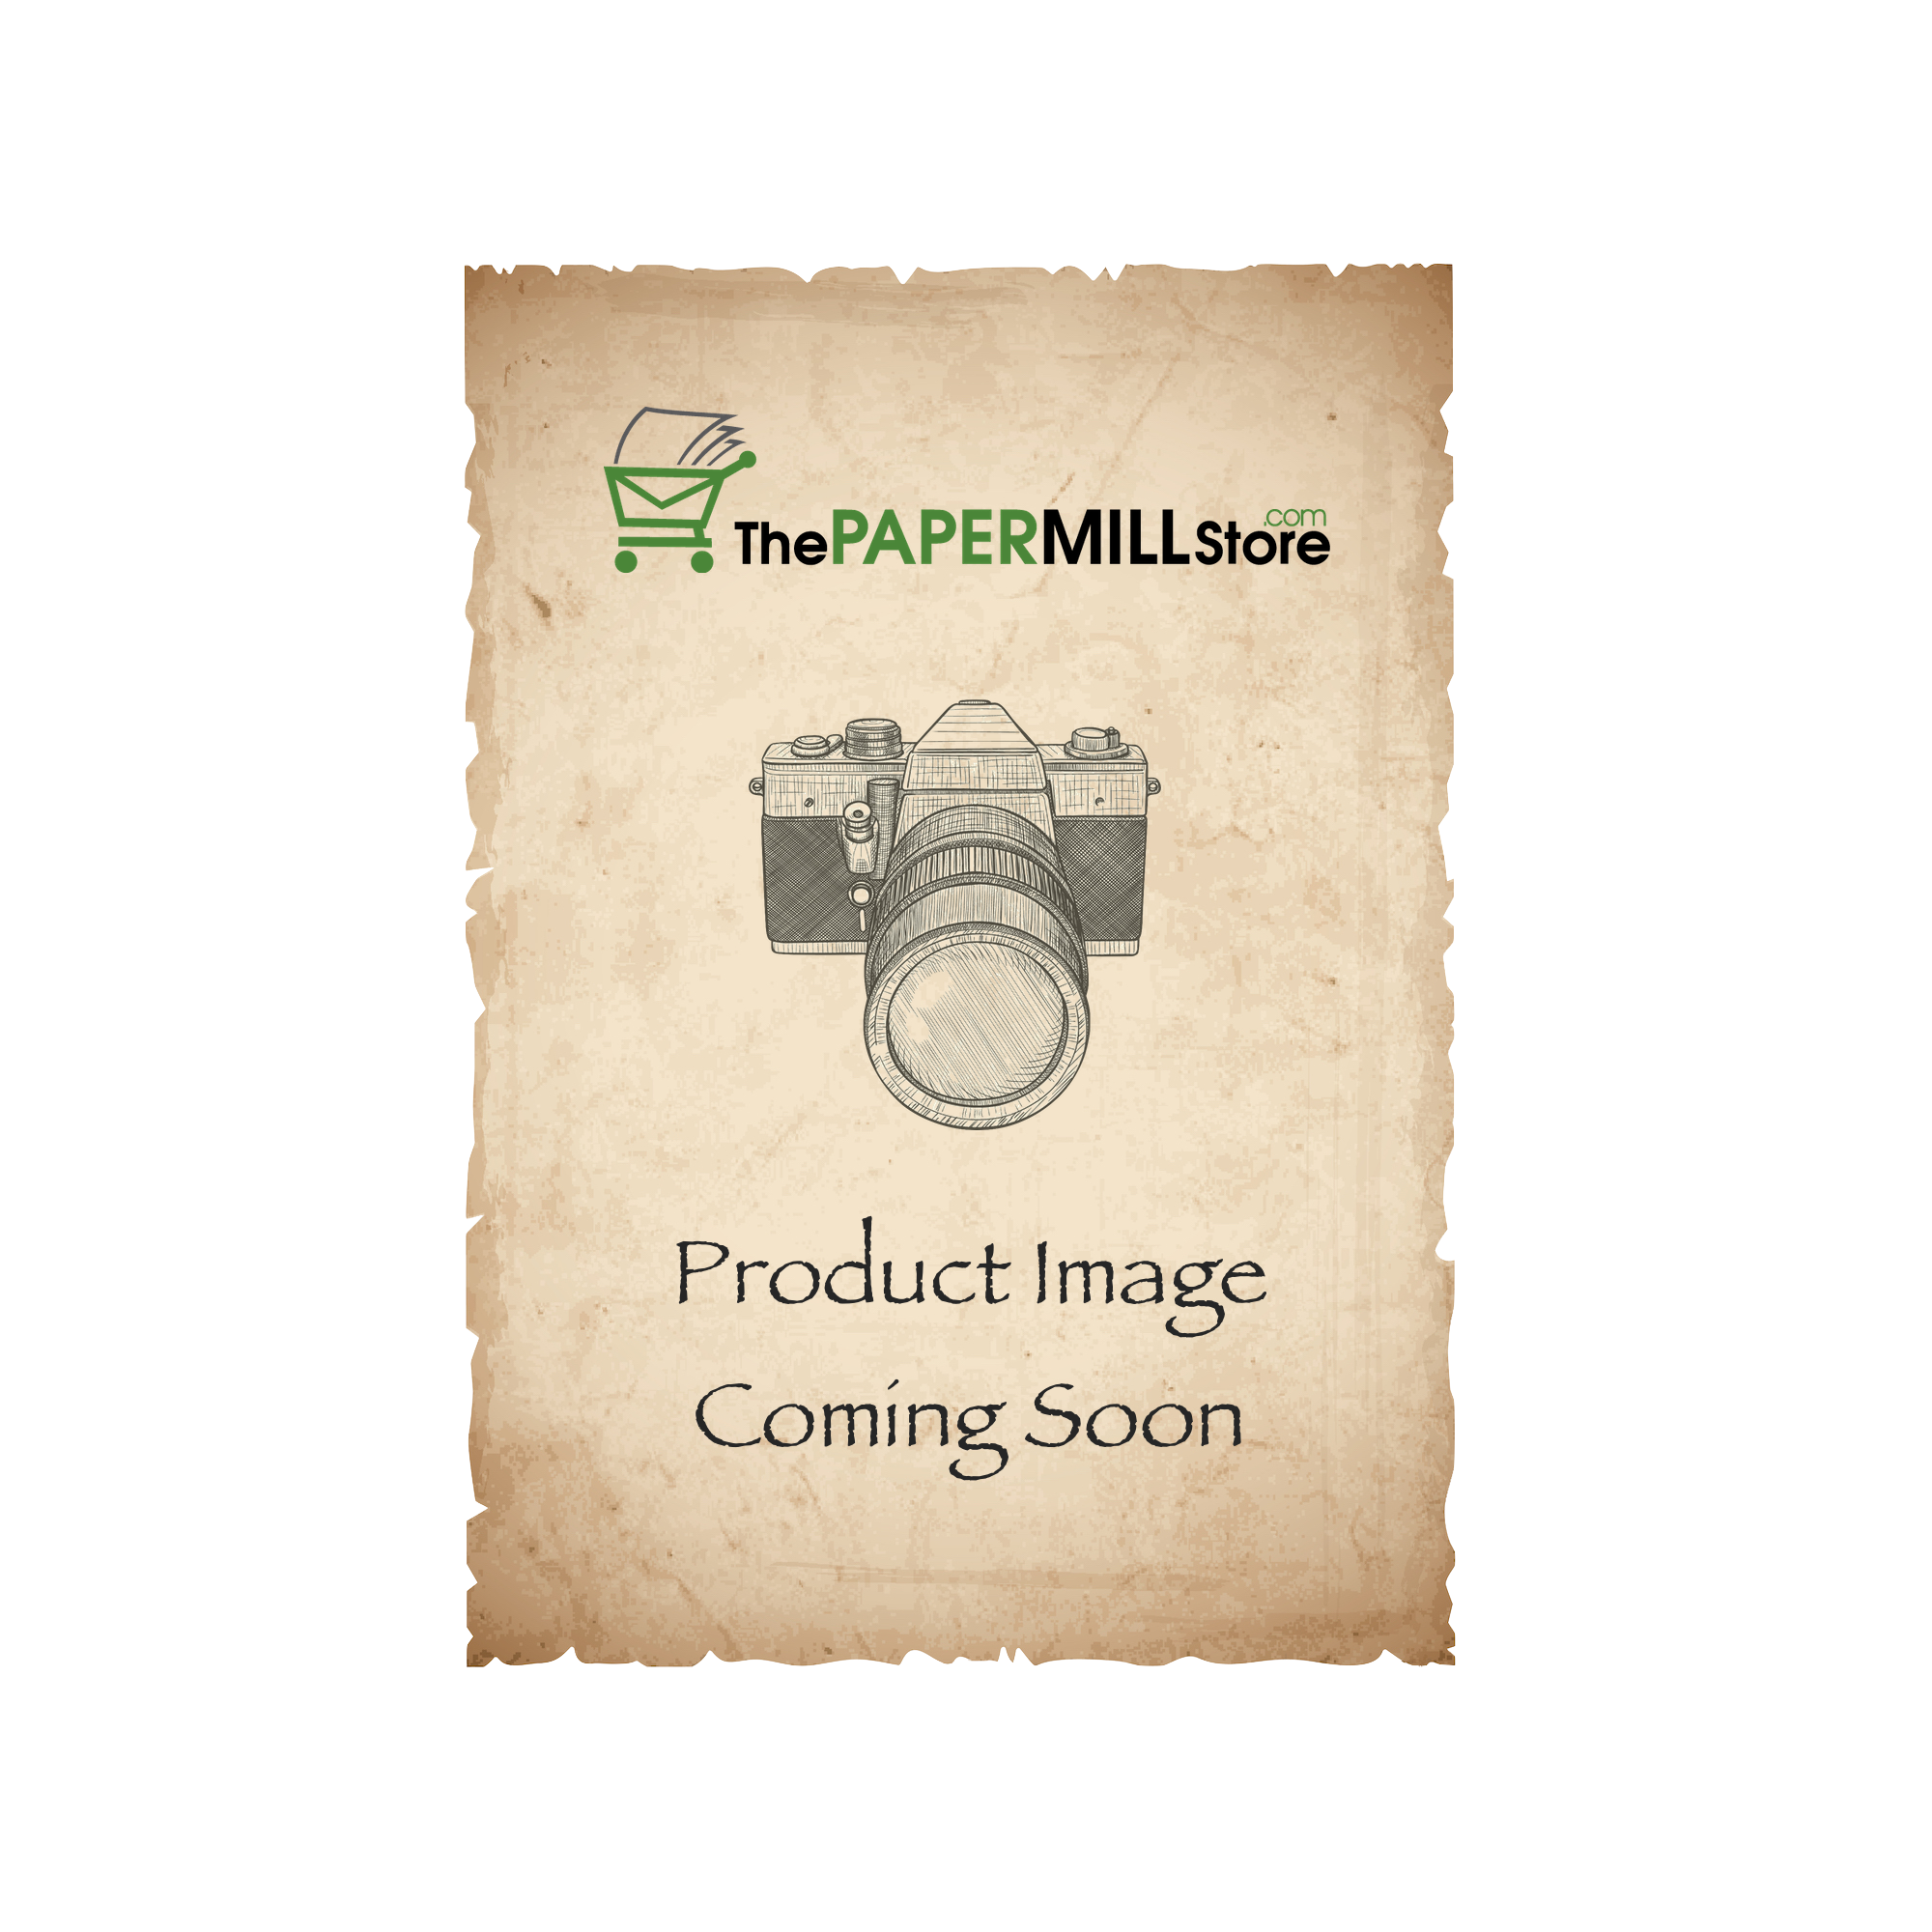 Buy Via Vellum Pine Card Stock - 26 x 40 in 80 lb Cover Vellum  30% Recycled 400 per Carton at The Paper Mill Store .com